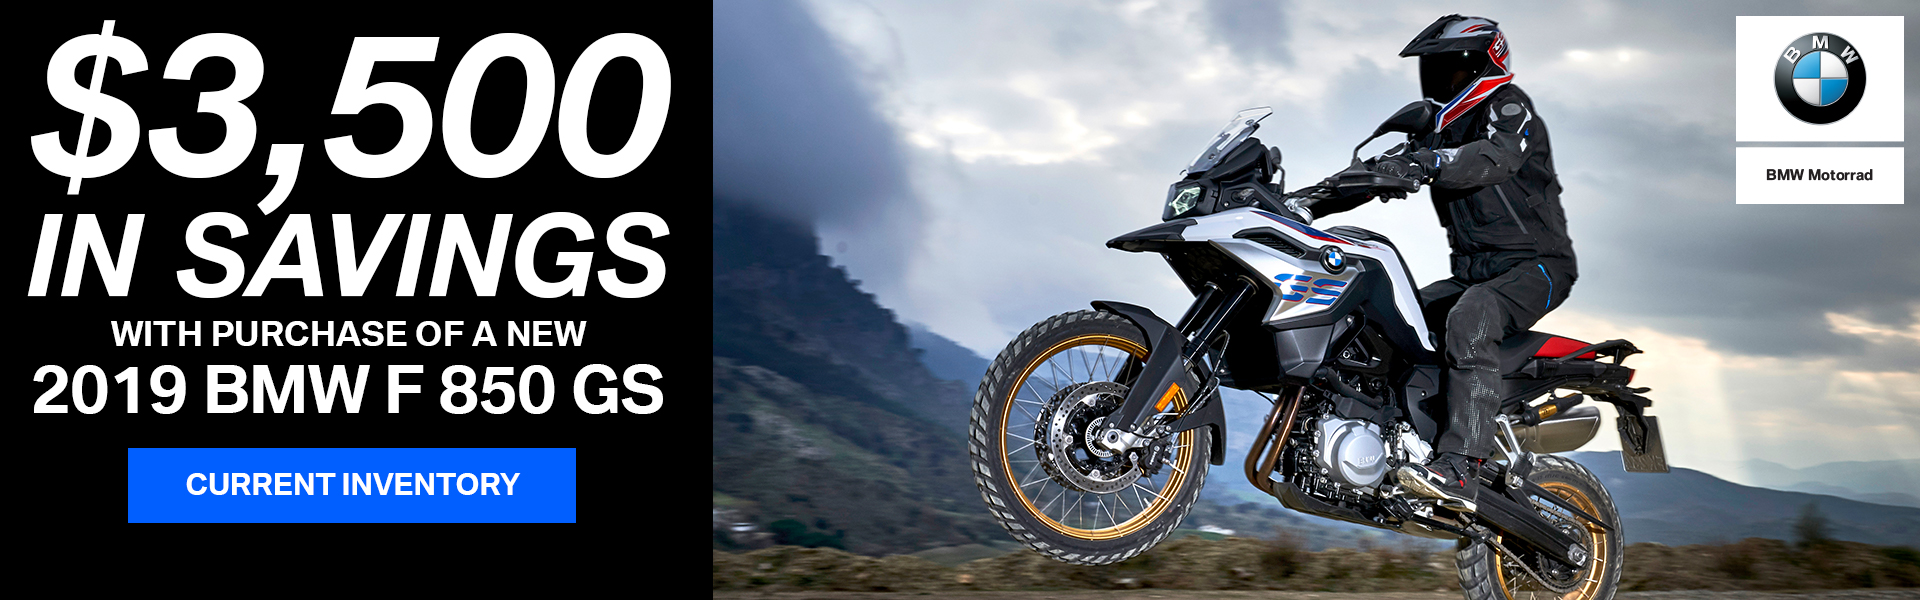 $3,500 in Savings with 2019 BMW F850 GS